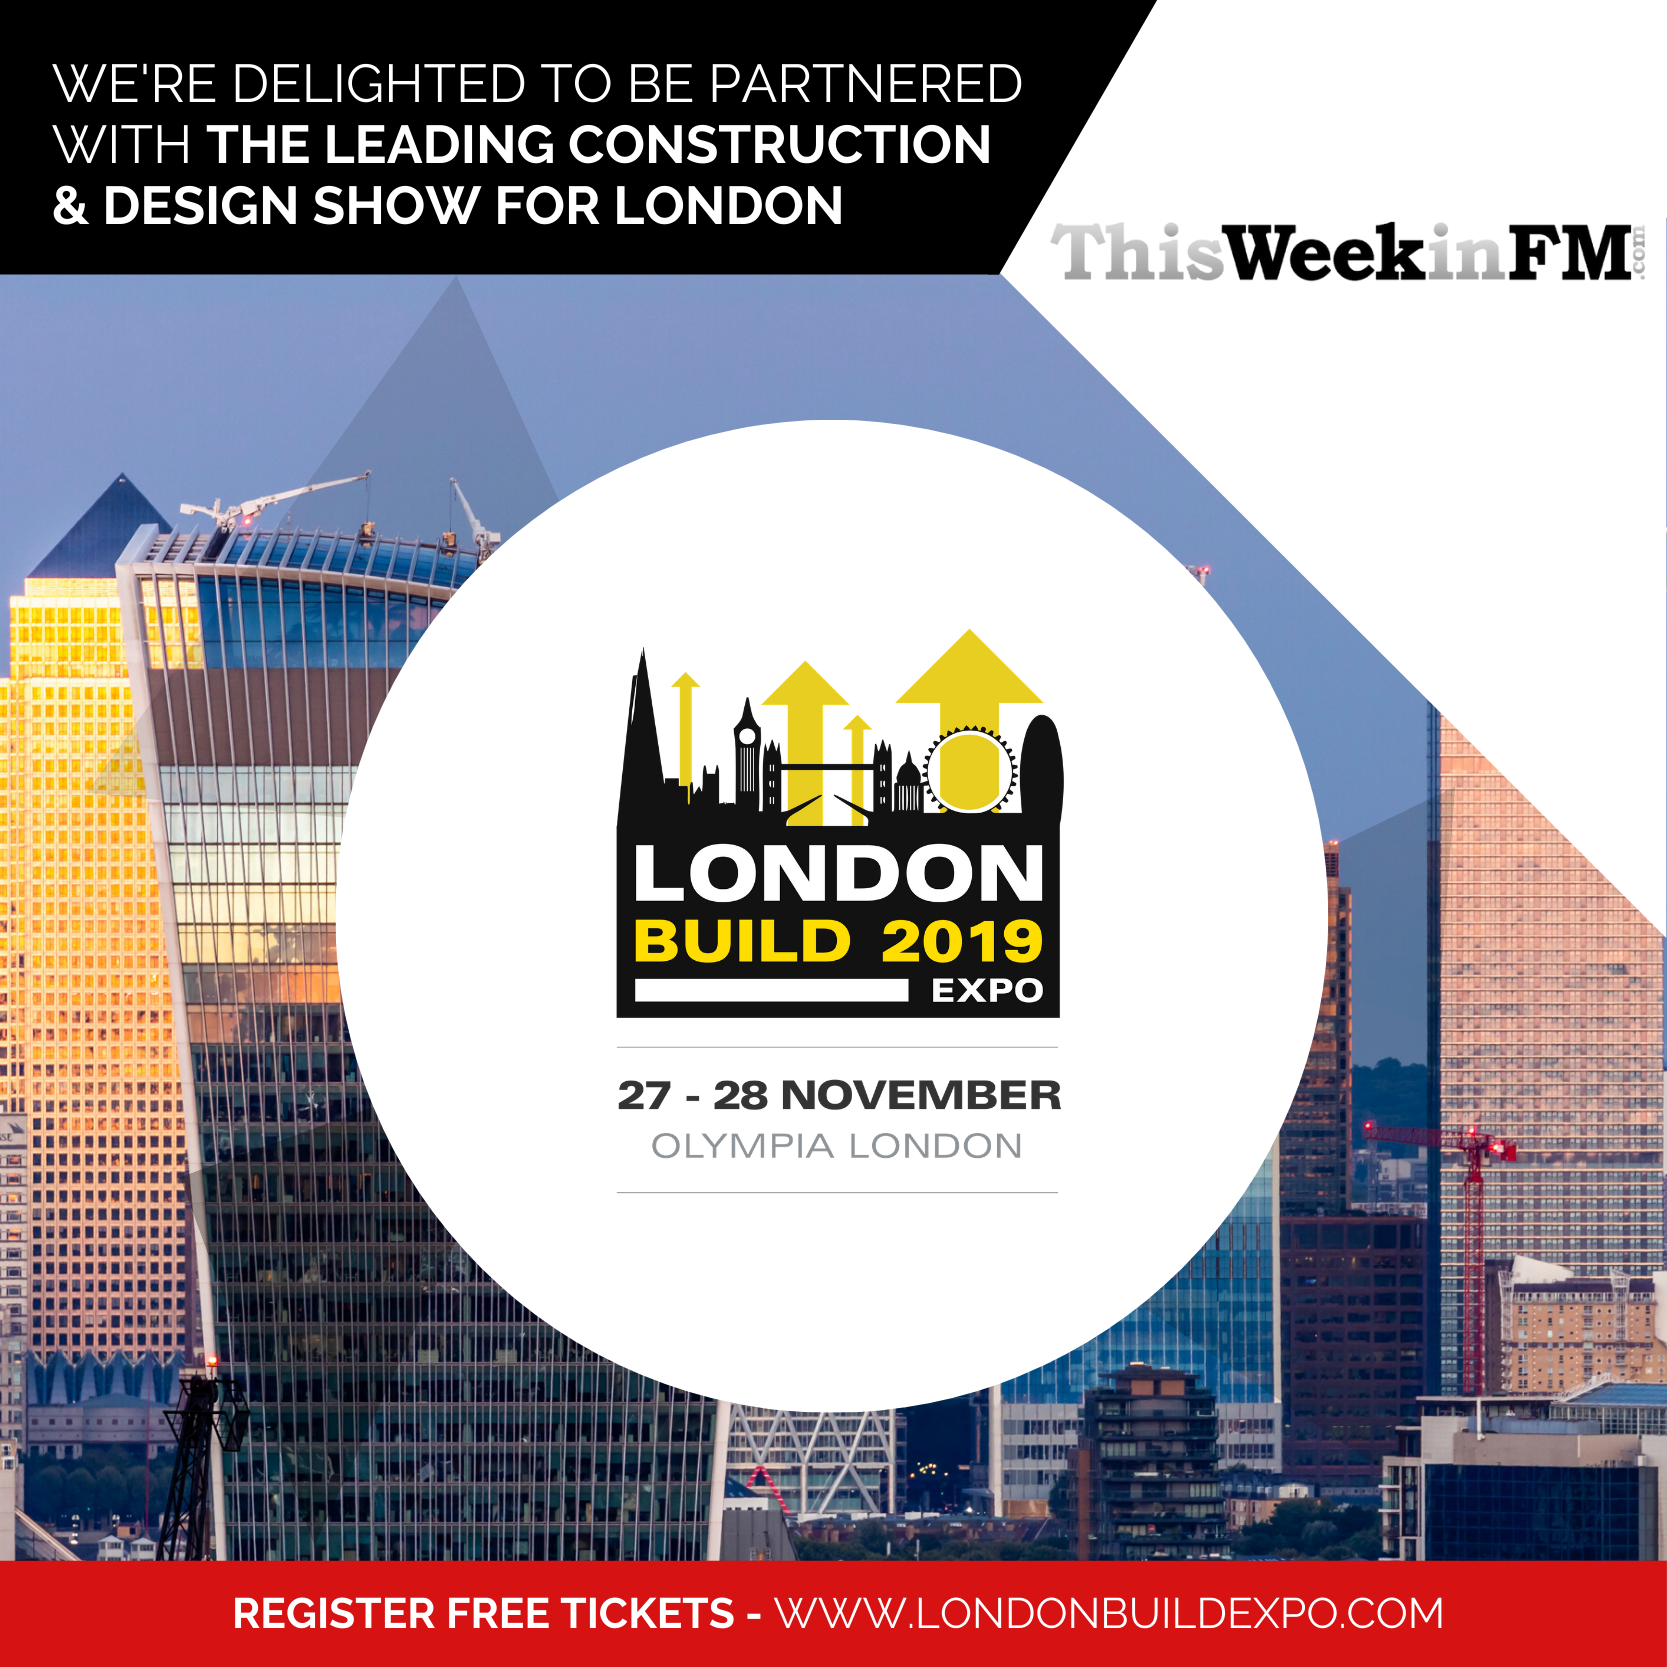 ThisWeekinFM has partnered with the London Build exhibition - November 27-28.